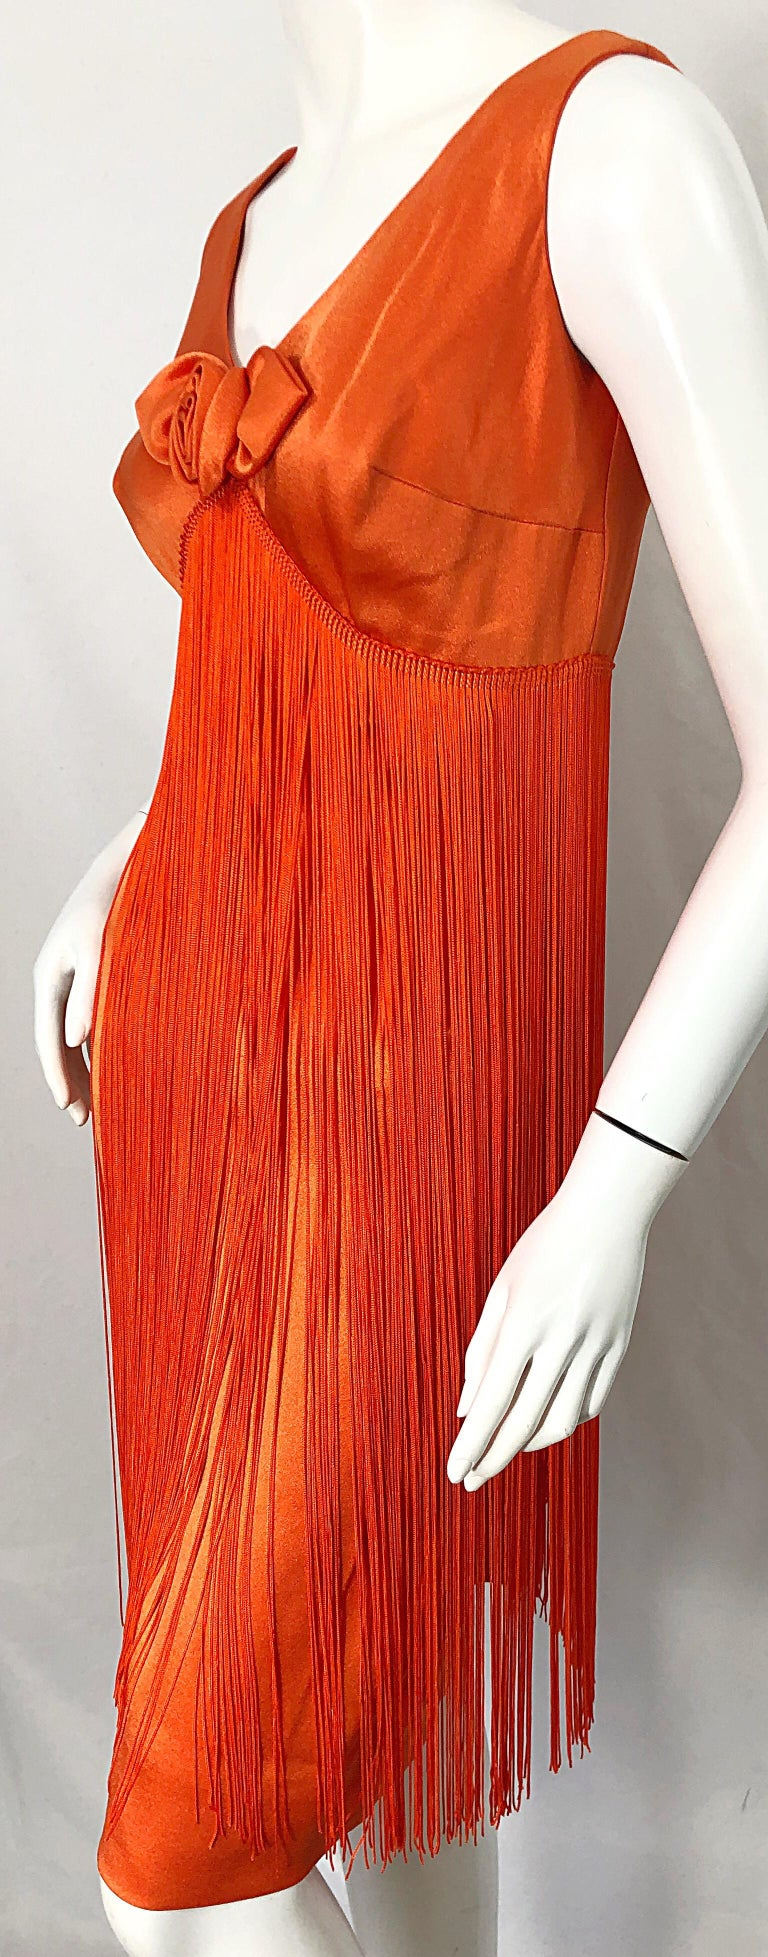 1960s Joseph Magnin Neon Orange Fully Fringed Vintage 60s Flapper Dress In Excellent Condition For Sale In Chicago, IL